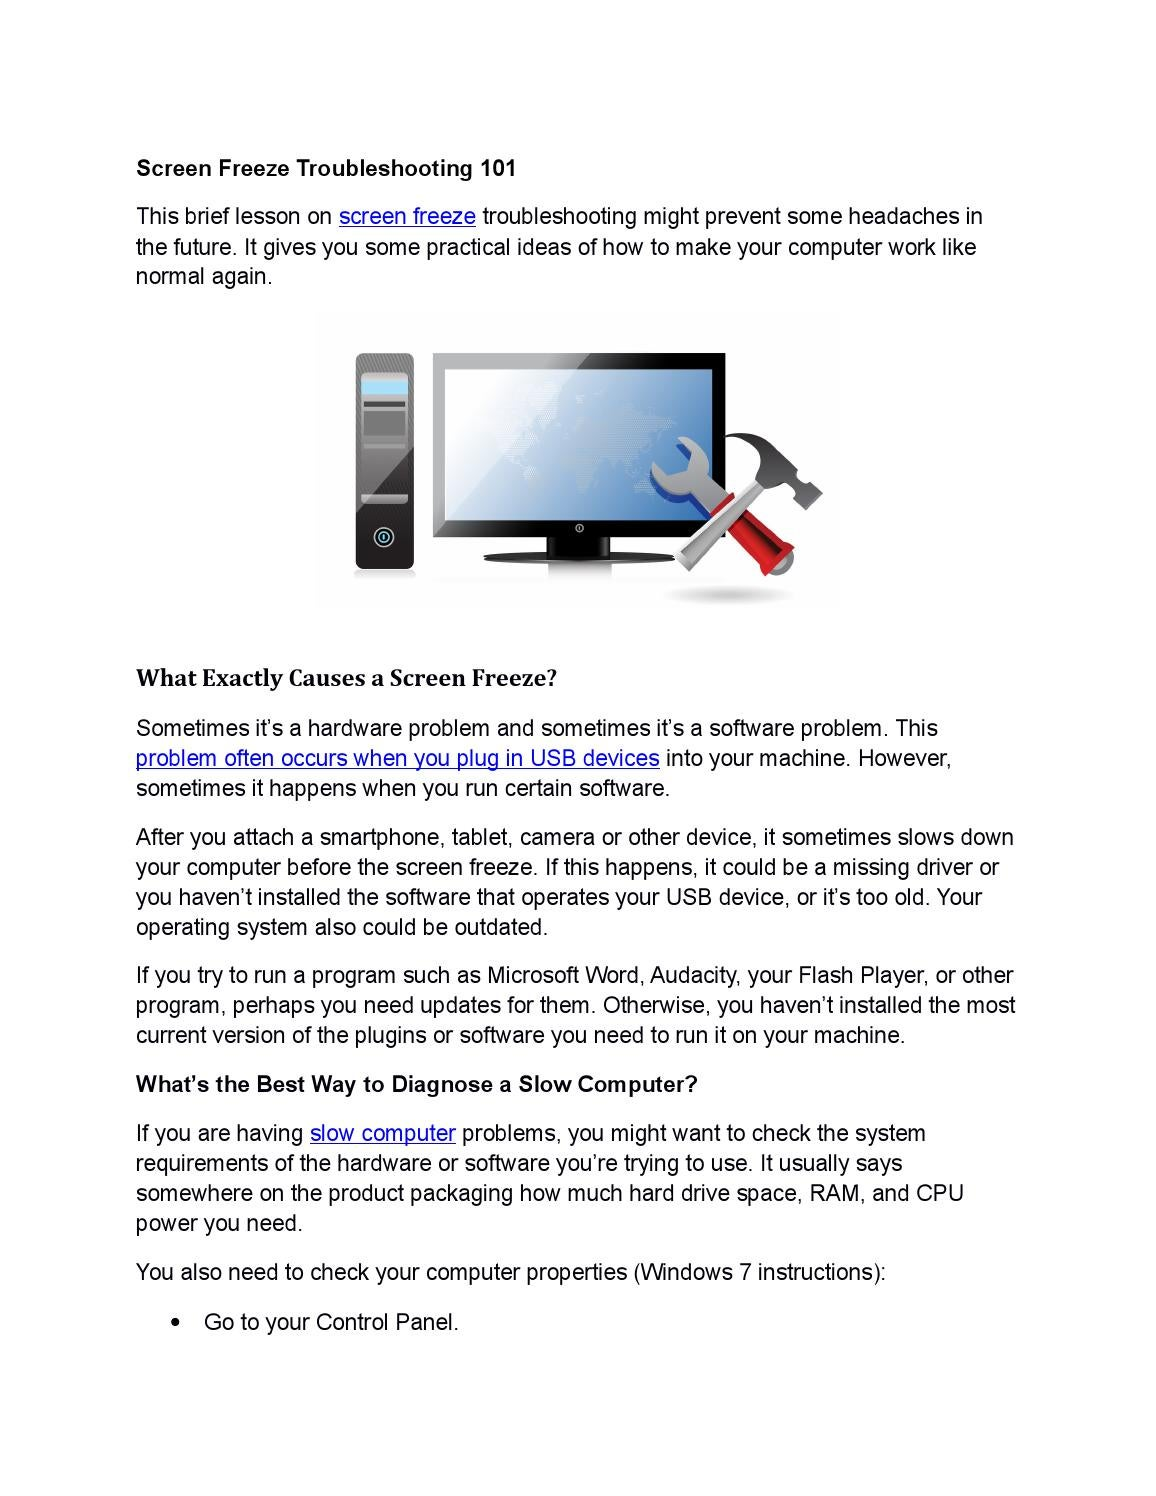 Screen freeze troubleshoot 101 by Boost Software - issuu